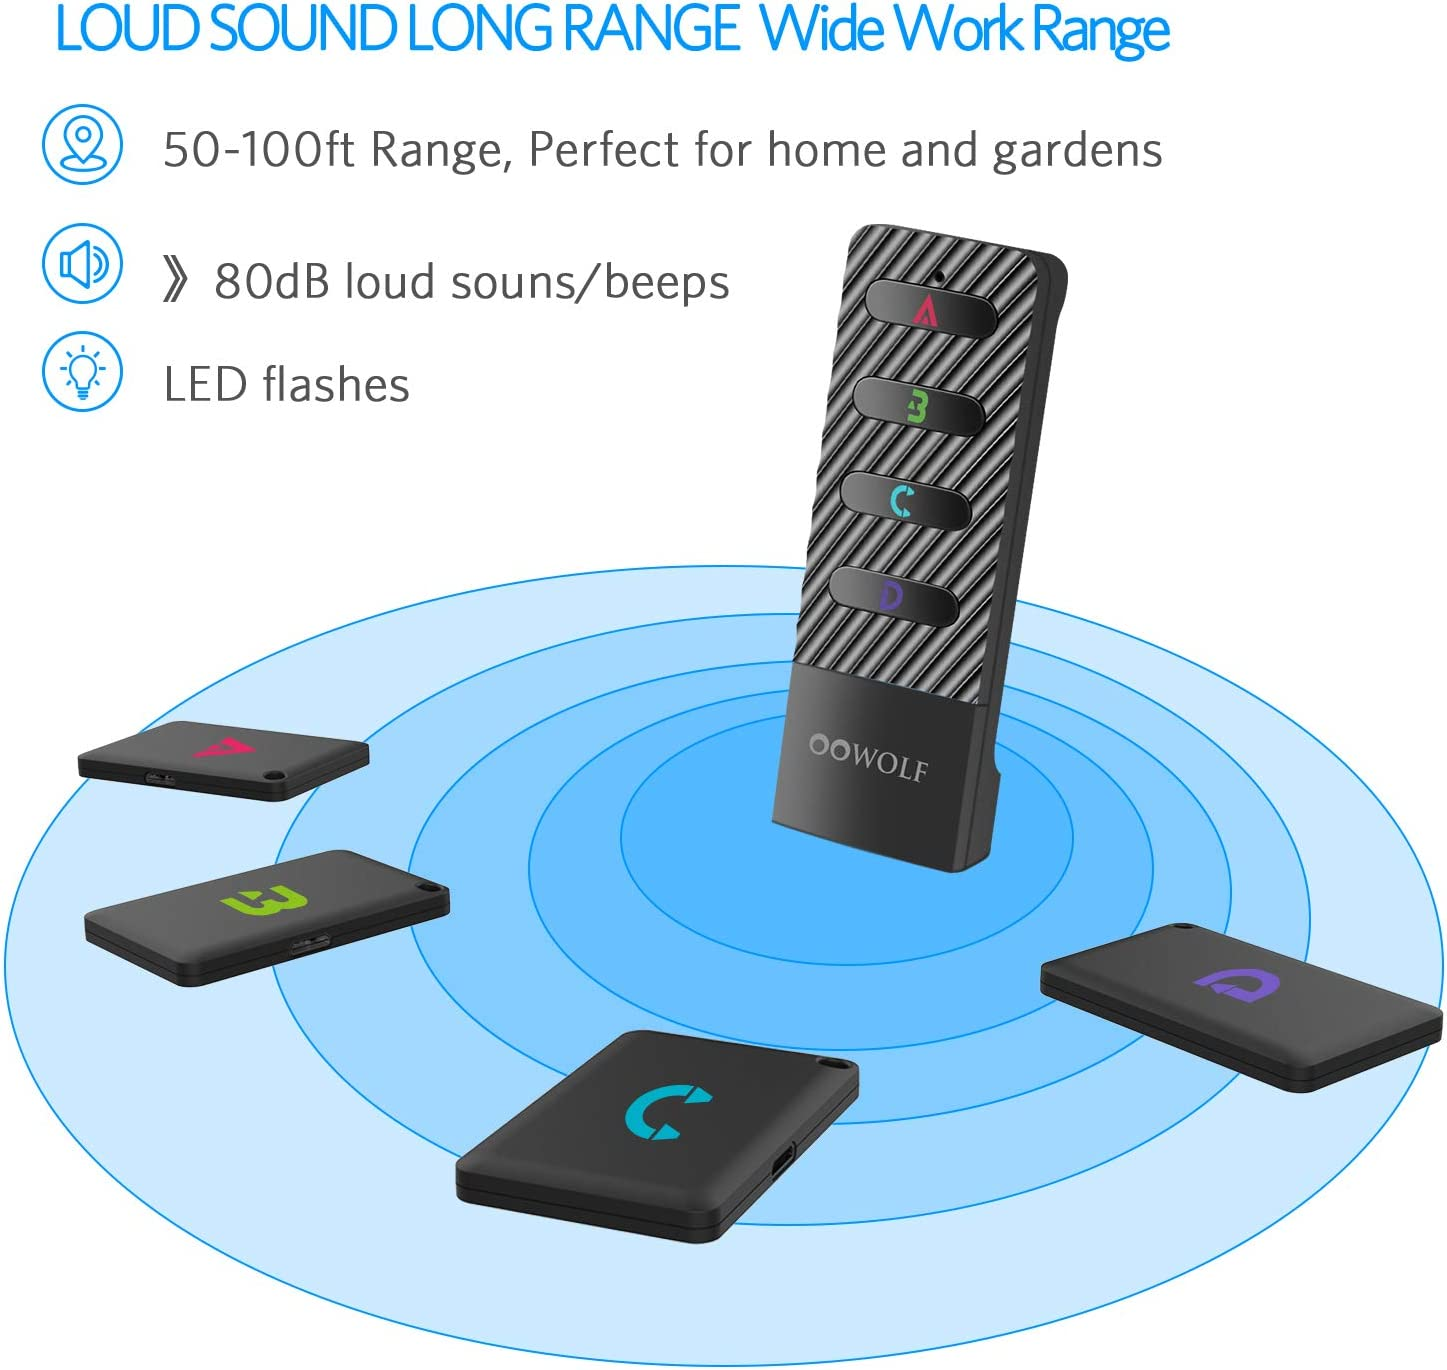 Wallet Phone TV Remote OOWOLF Key Finder Wireless RF Item Locator Anti-Lost Alarm Item Tracker Finder Loud Beeping Sound with 4 Receivers Rechargeable for Car Keys